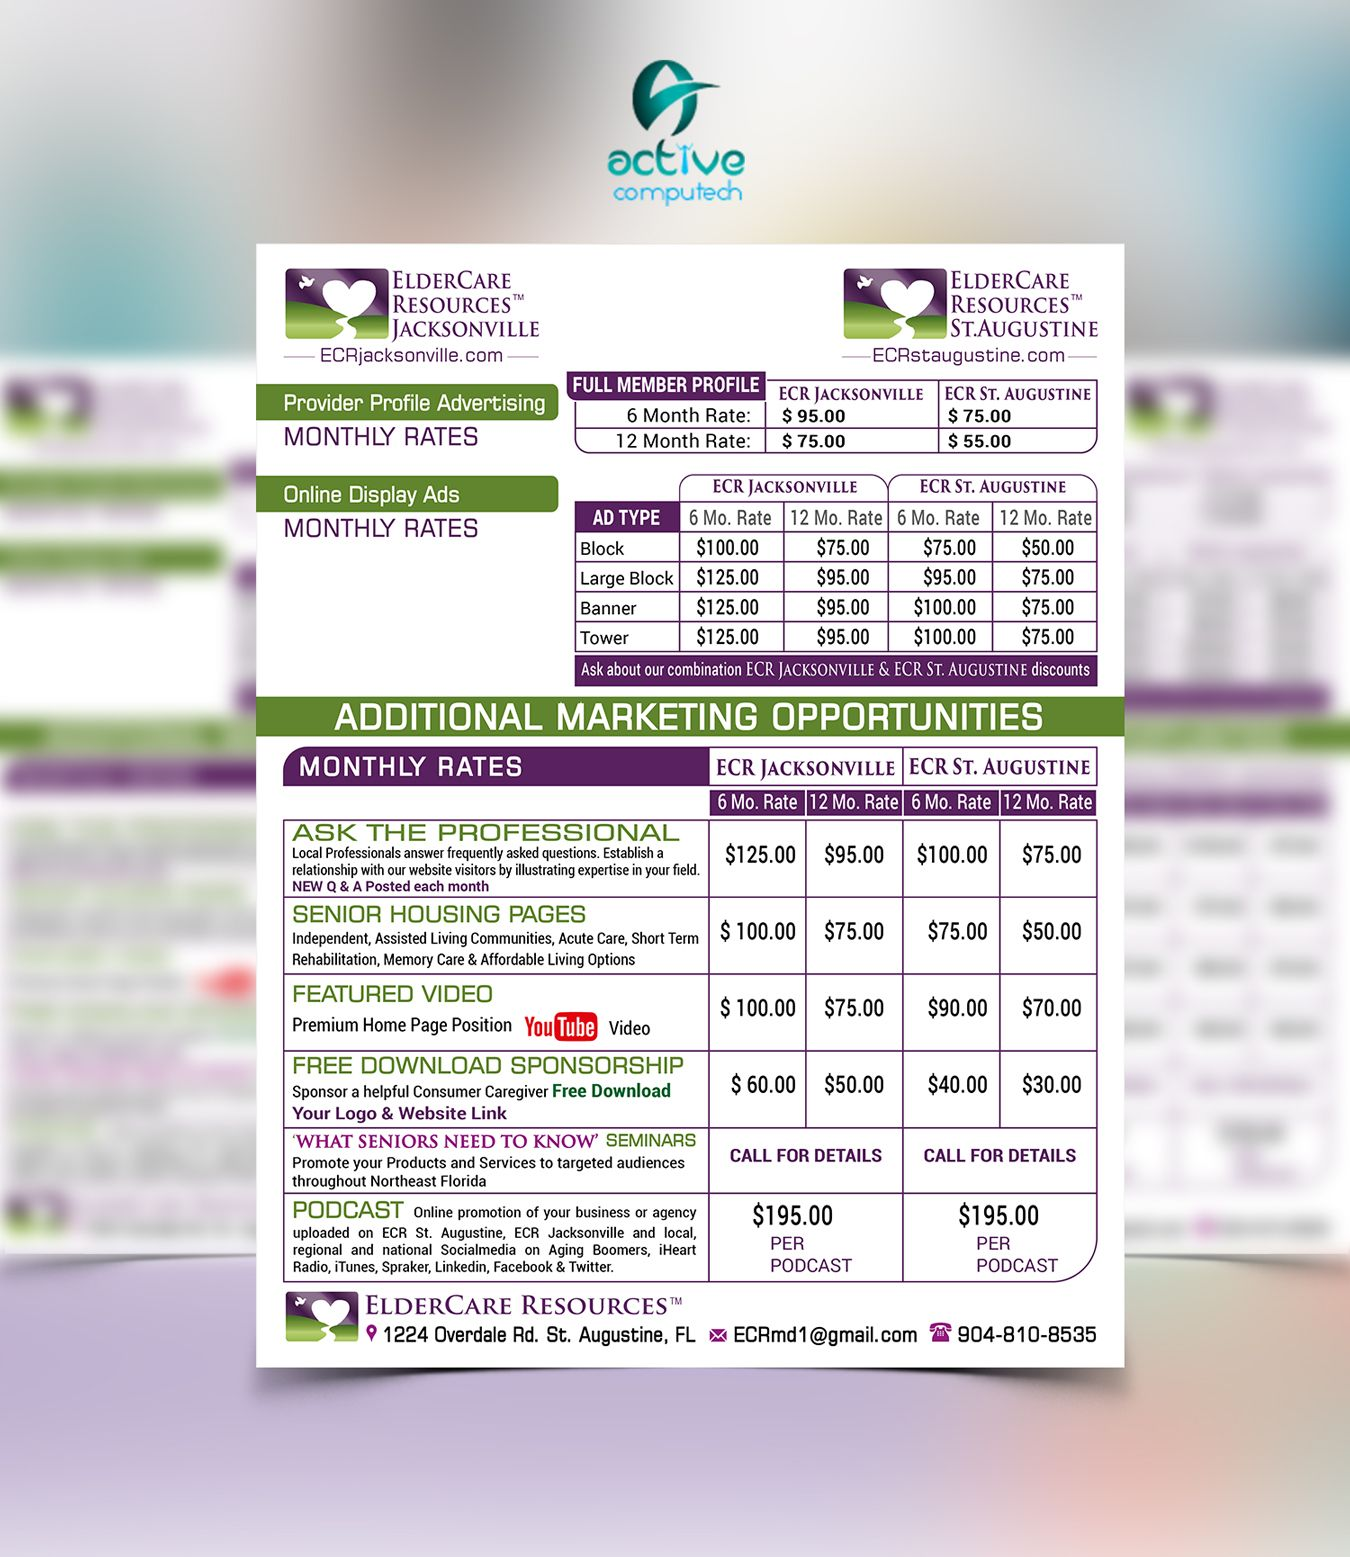 Sell Sheet Rate Card And Flyer Designs Http Activecomputech Com Web Design Amazing Website Designs Freelance Graphic Design